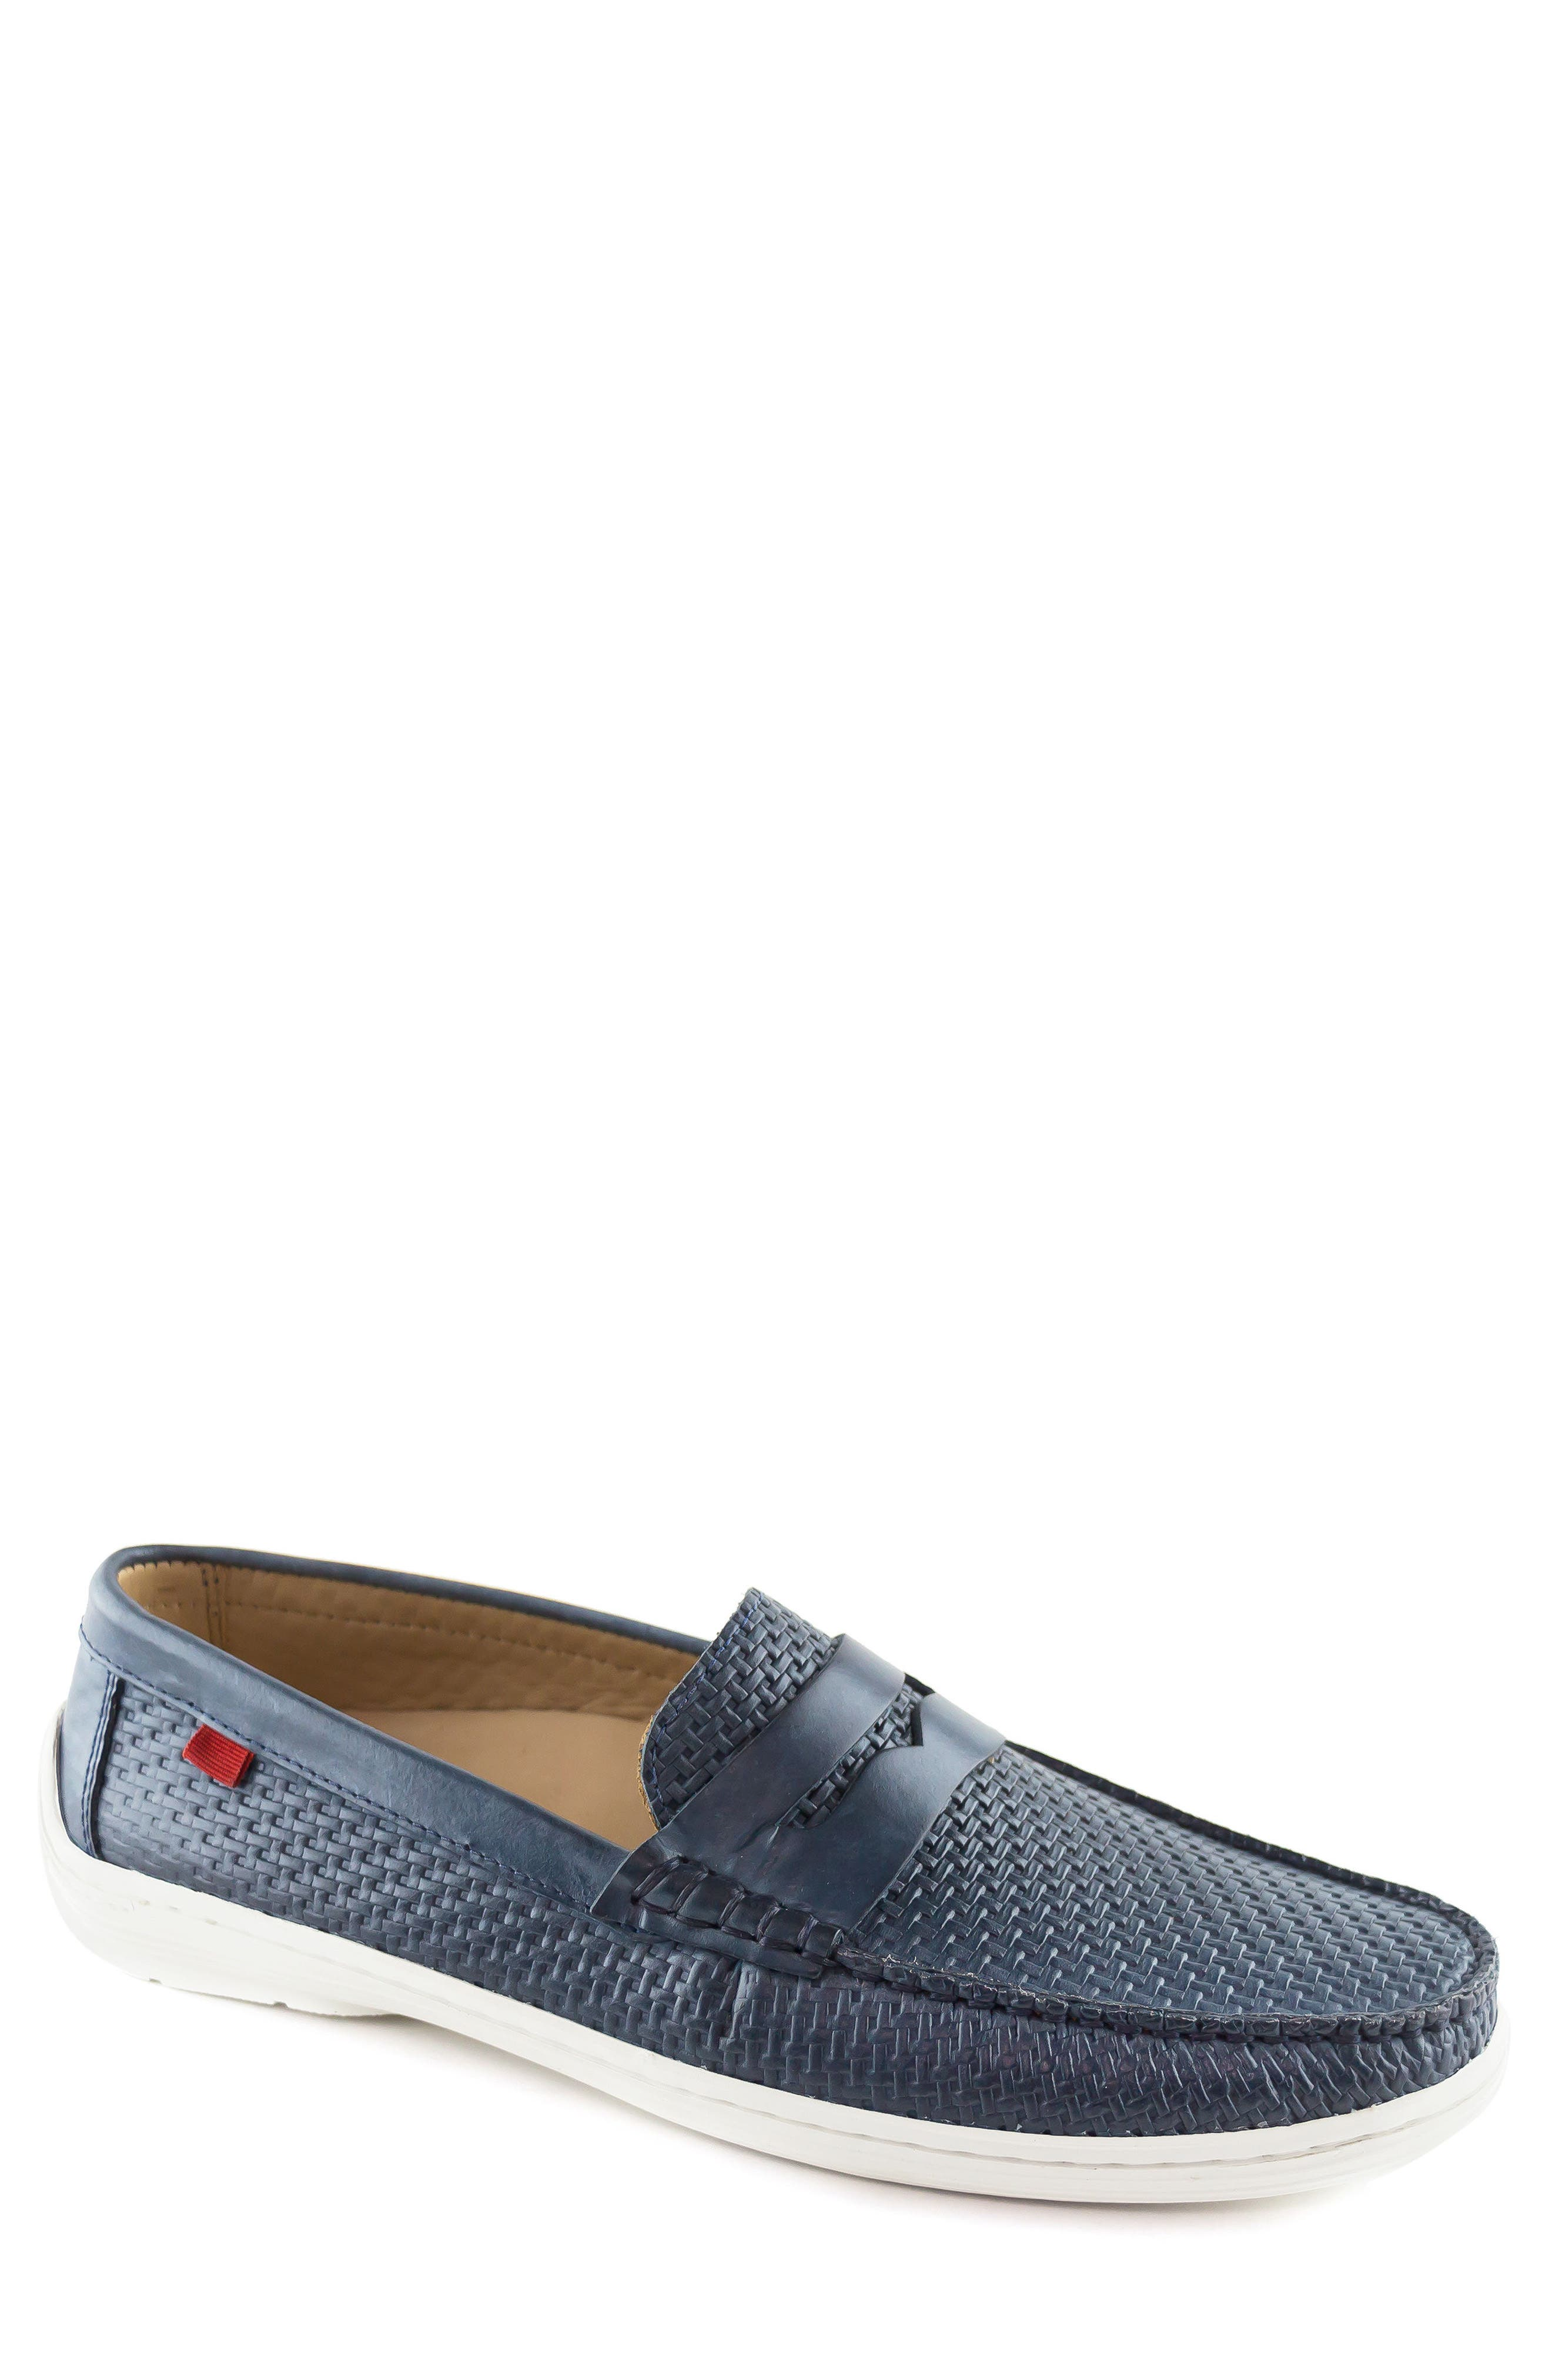 Atlantic Penny Loafer,                         Main,                         color, Blue Leather